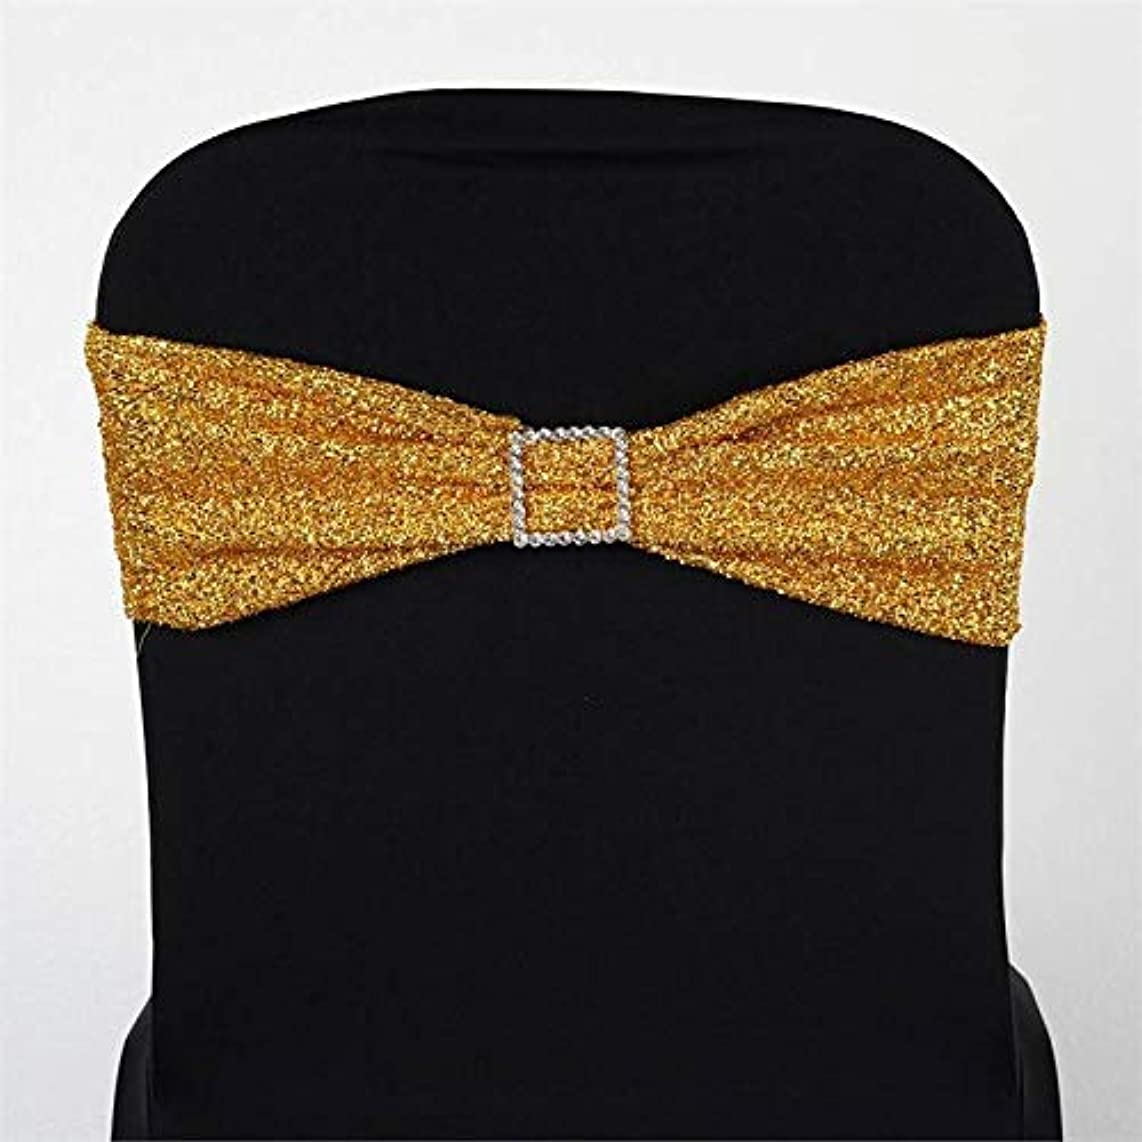 BalsaCircle 10 Gold Metallic Spandex Chair Sashes Bows Ties - Wedding Party Ceremony Reception Decorations Supplies Wholesale